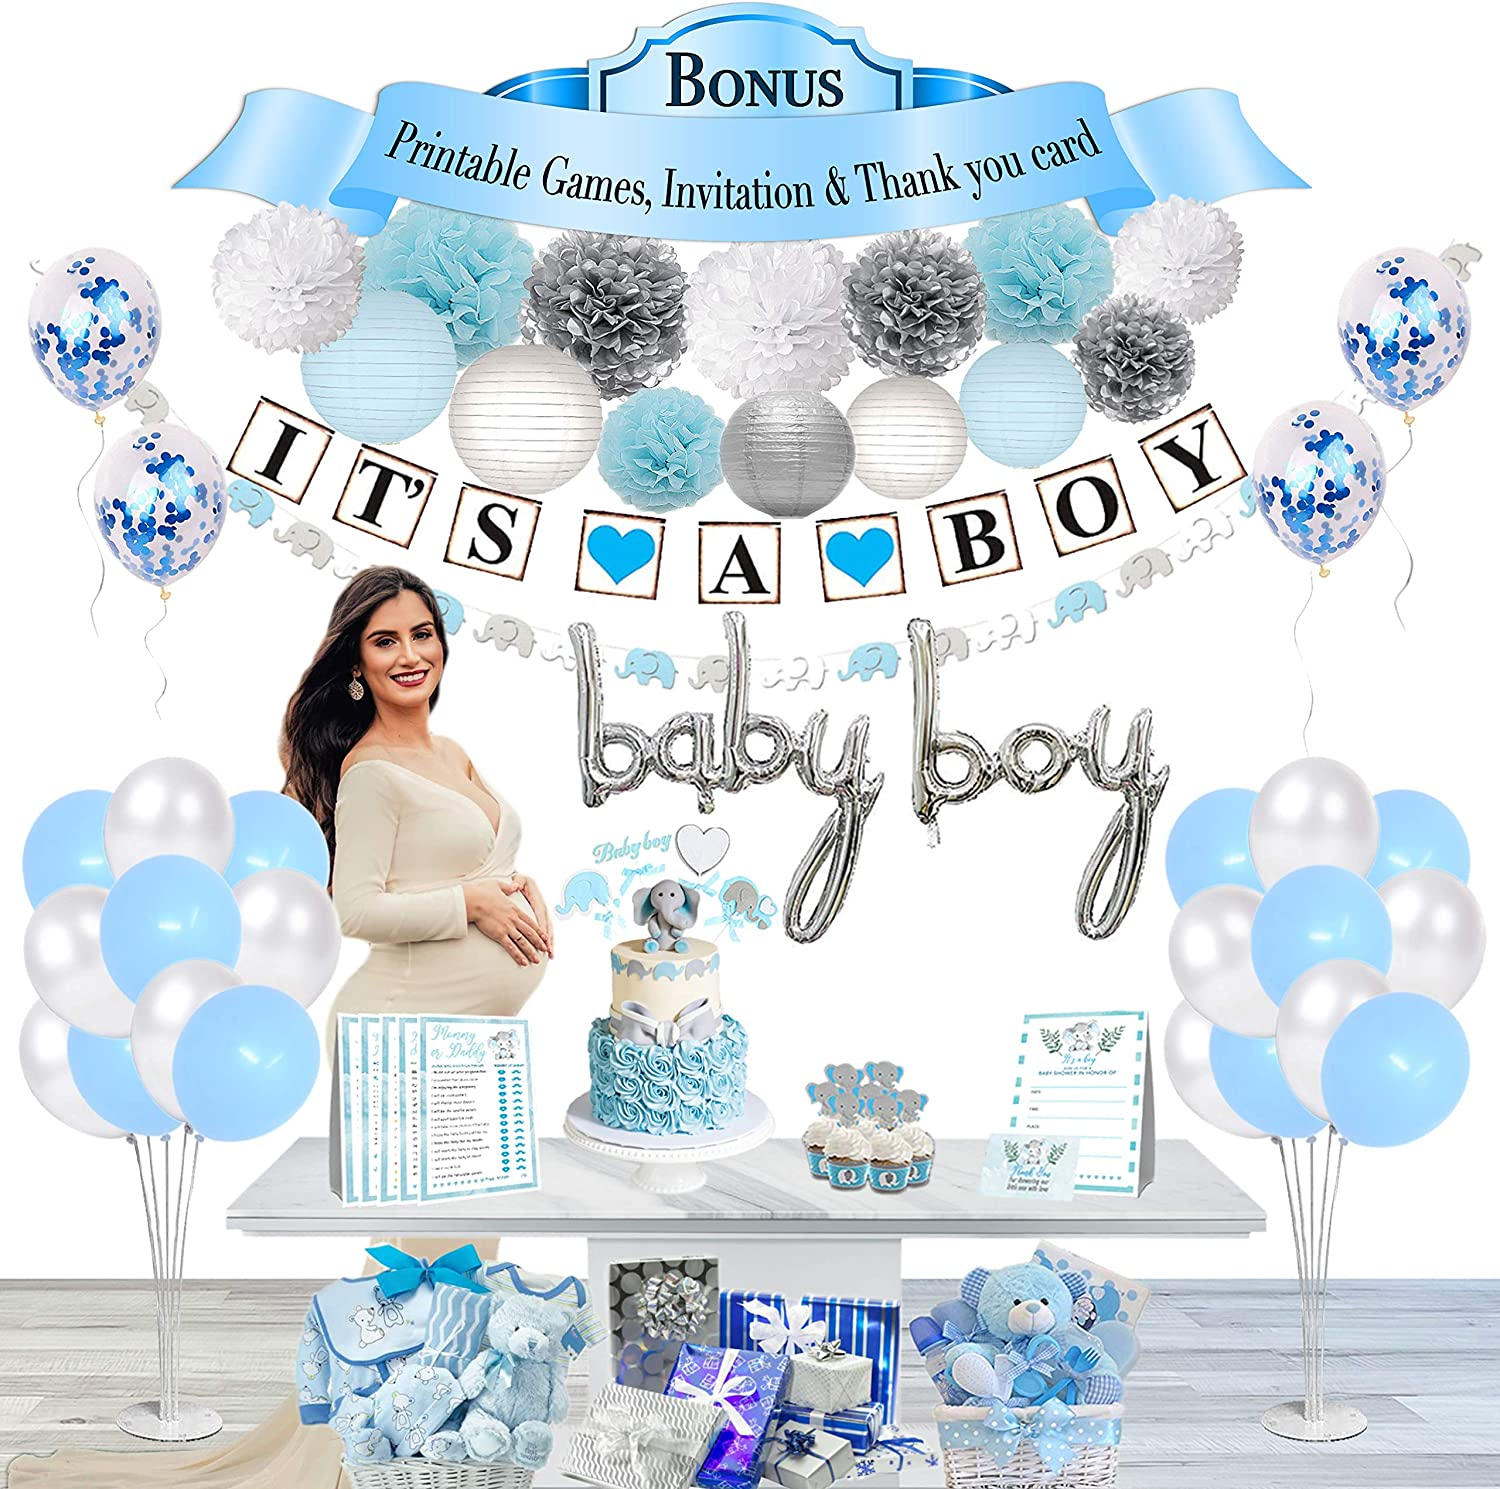 Blue Baby Shower Decorations for Boys, Banner Decor, Flower Pom Poms, Paper Lanterns, Cake Toppers, Elephant Garland, Latex and Foil Confetti Balloons, Air Pump + Printable Games, Thank you Card and Invitation Card